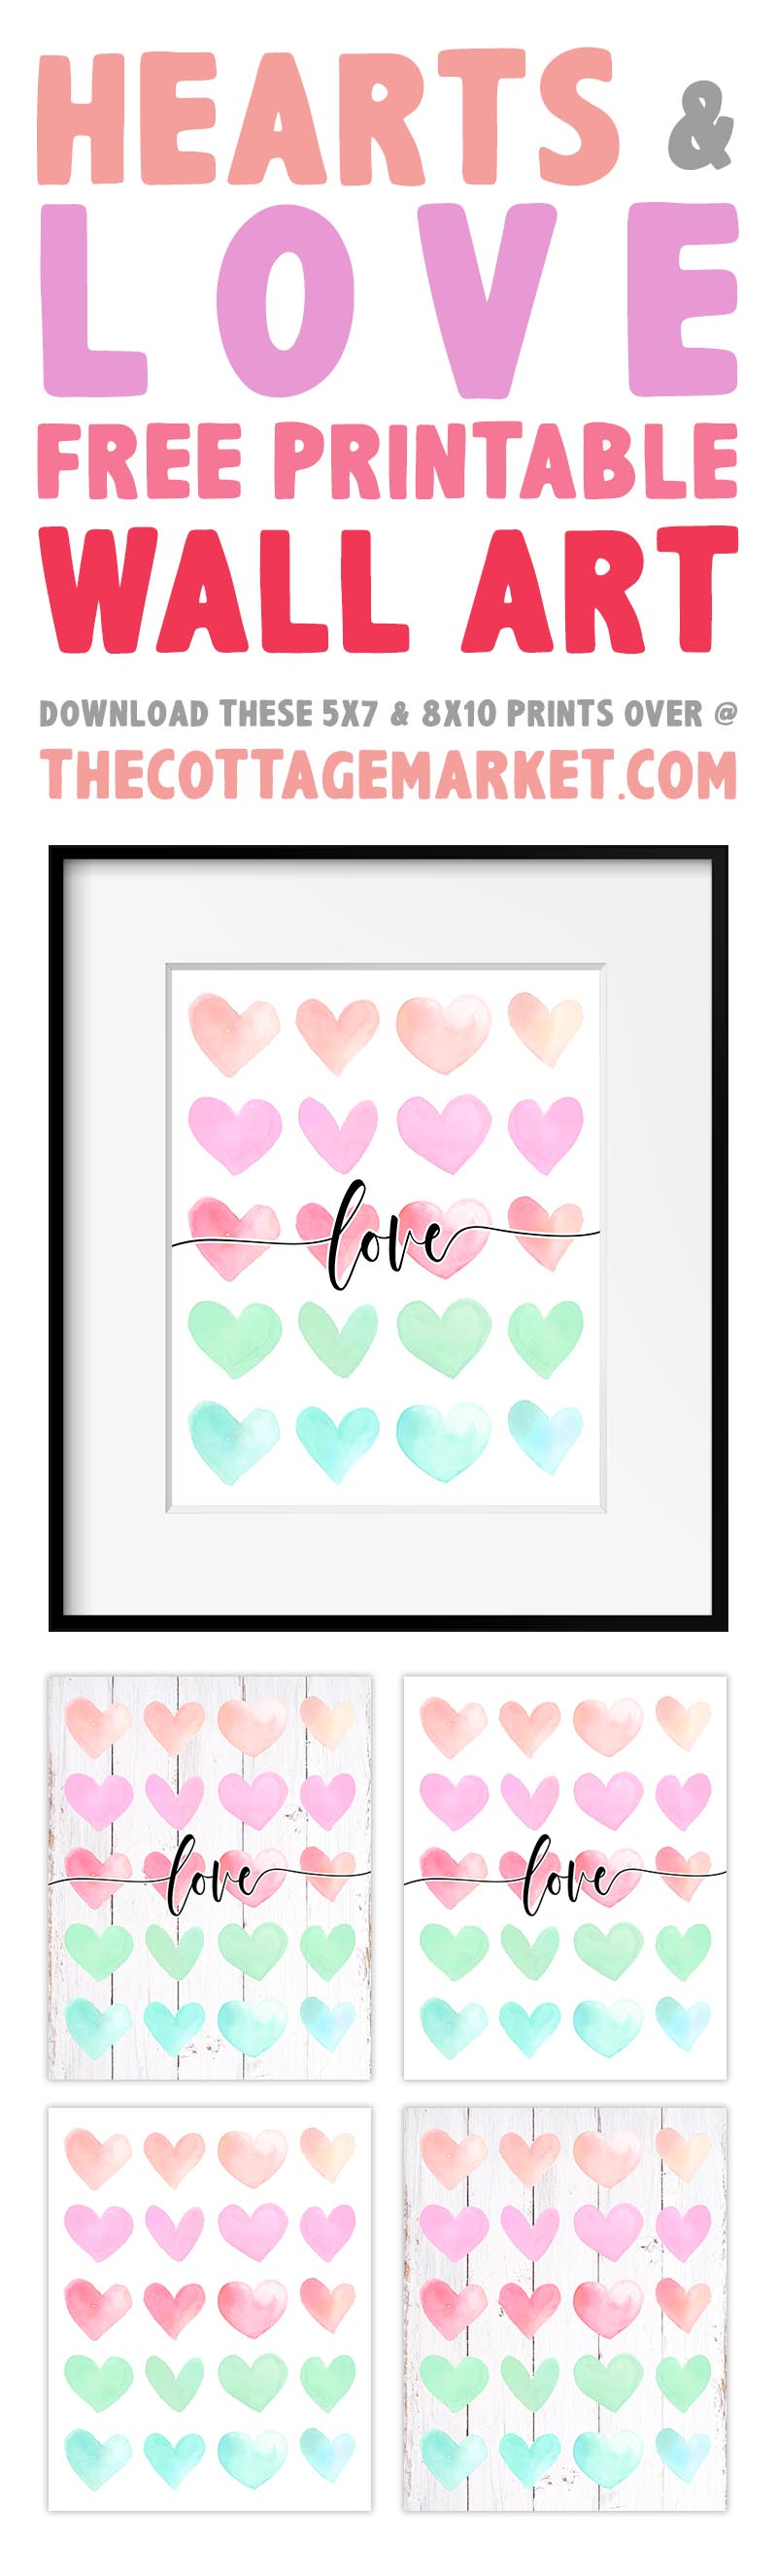 This Collection of Hearts and Love Free Printable Wall Art will add a touch of Love and Fun to your Walls, Vignettes, Galleries and more! 2 different sizes... 2 different backgrounds... 4 different designs!